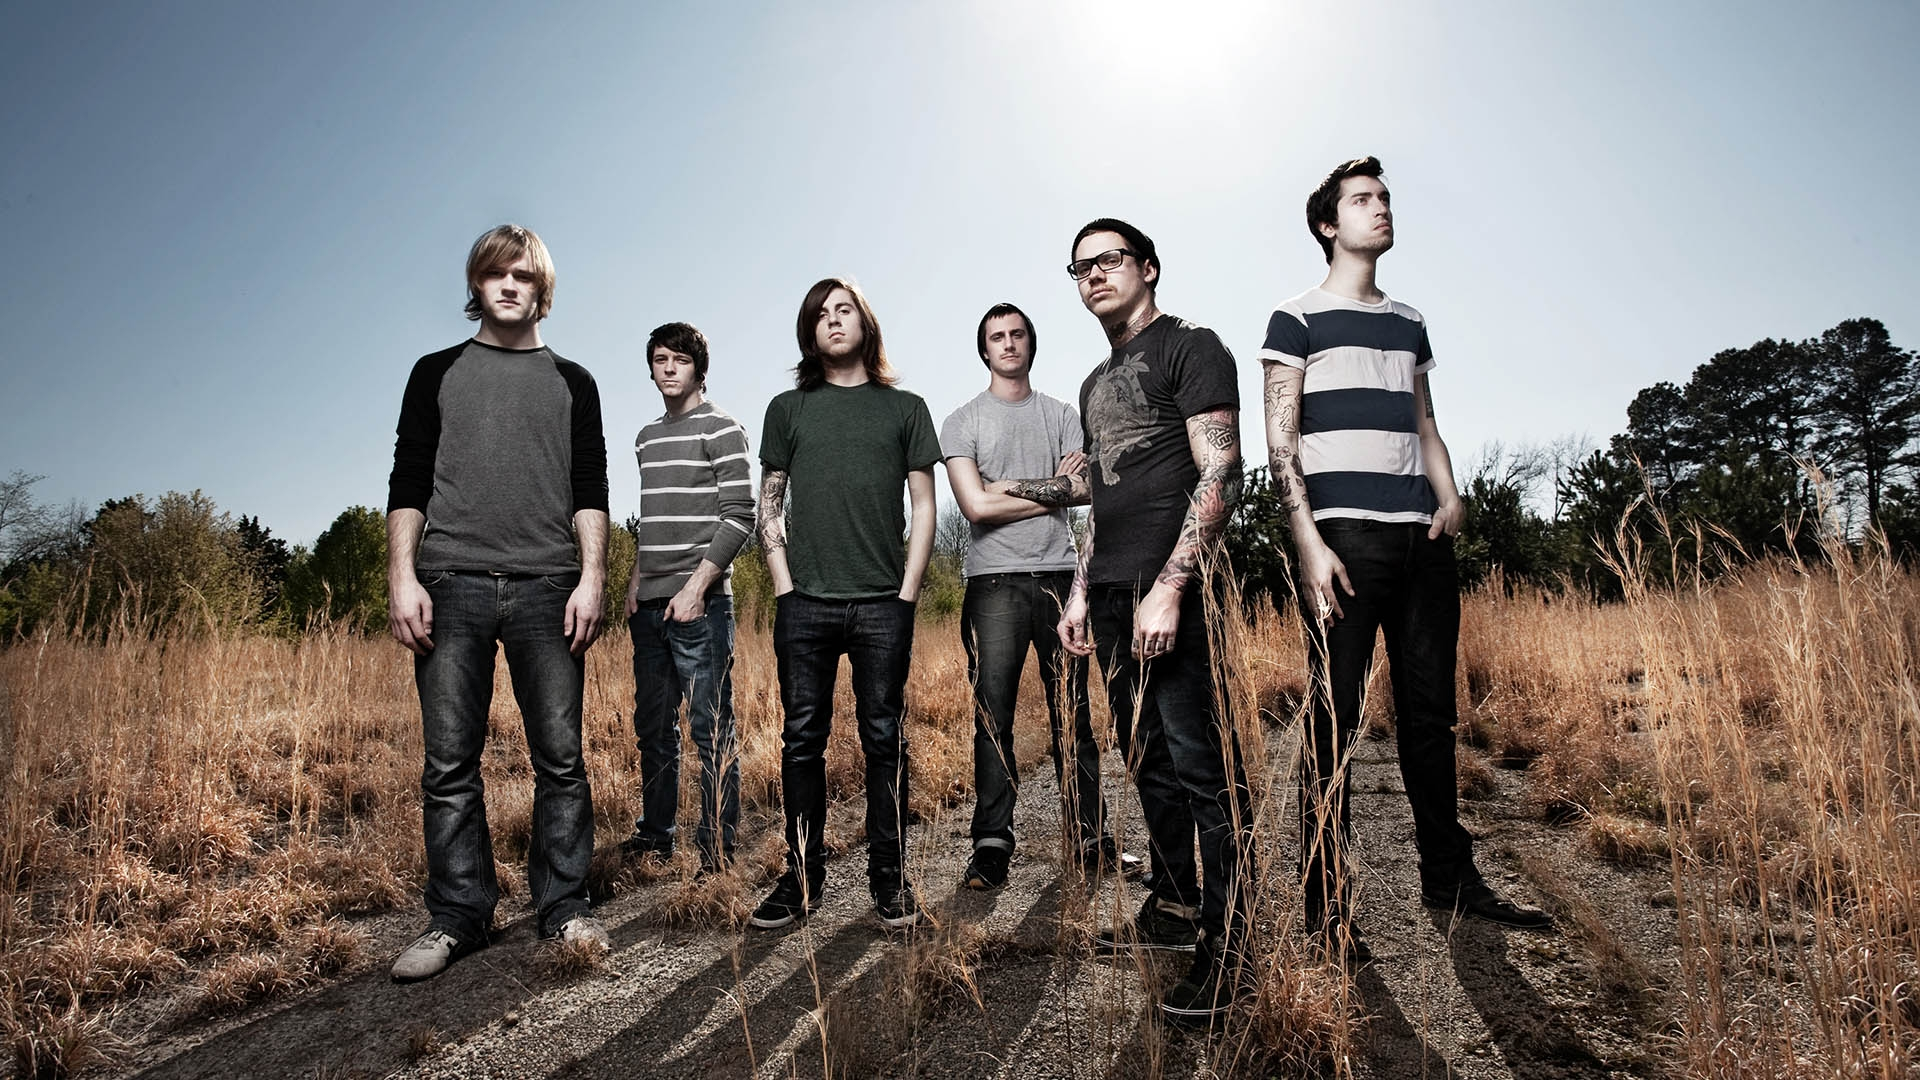 Wallpaper The devil wears prada, Field, Sky, Sunlight, Band HD